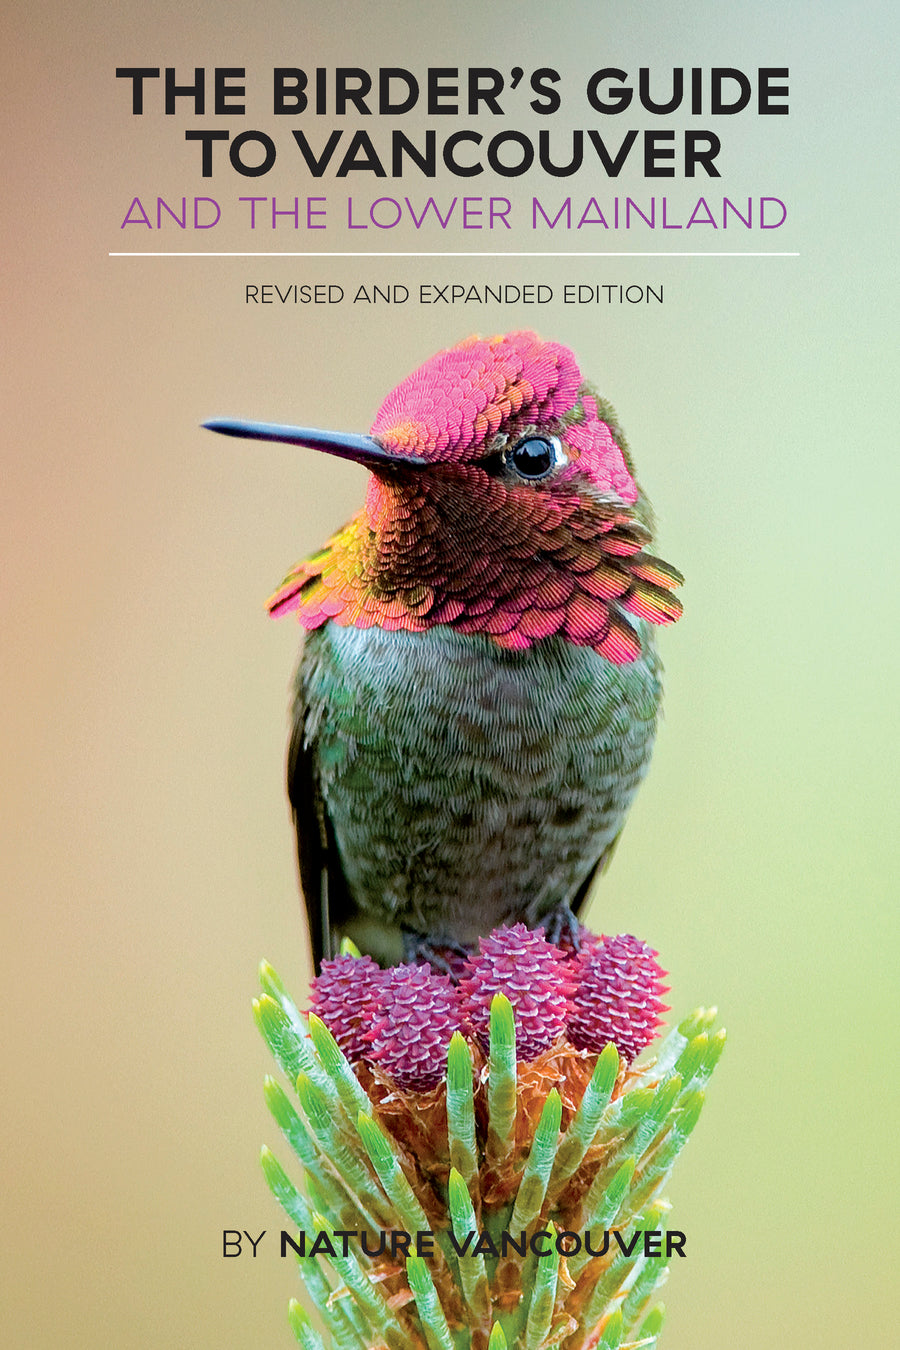 The Birder's Guide to Vancouver and the Lower Mainland : Revised and Expanded Edition